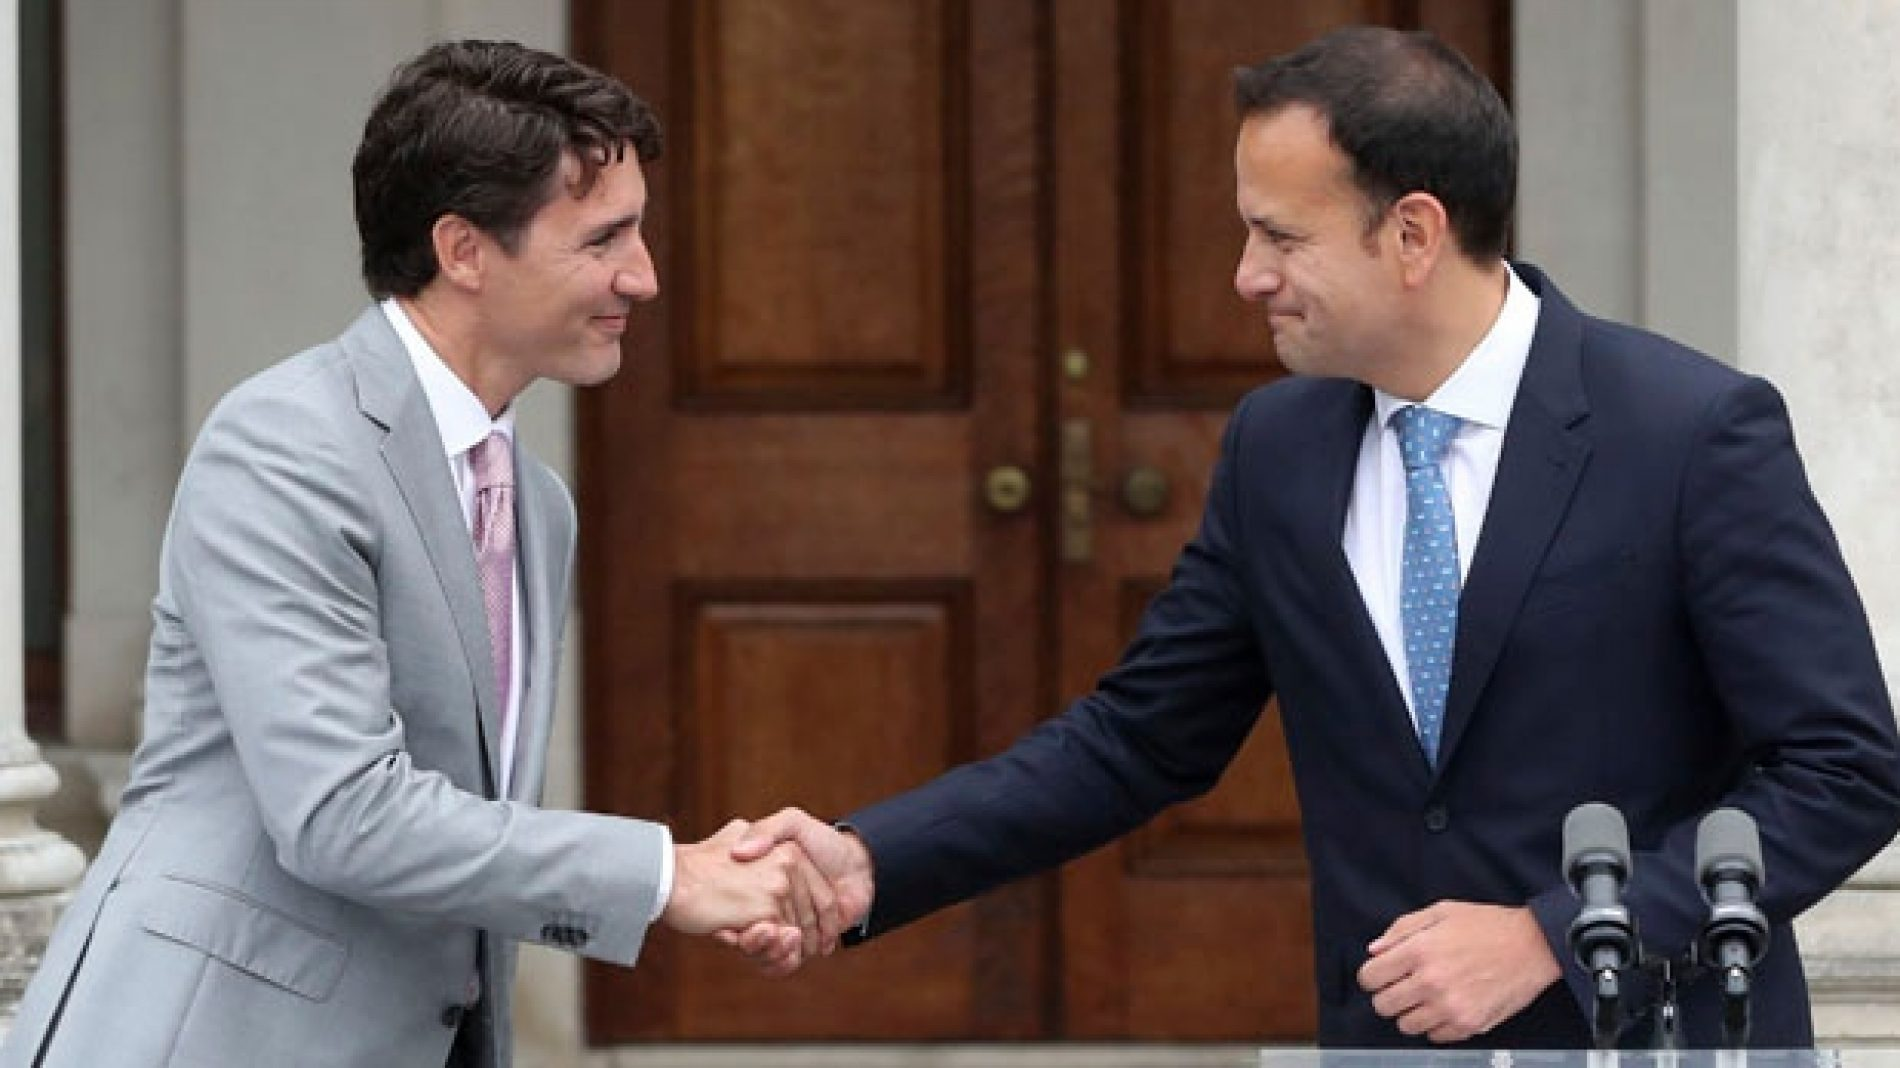 Canadian prime minister Justin Trudeau shaking hands with Taoiseach Leo Varadkar